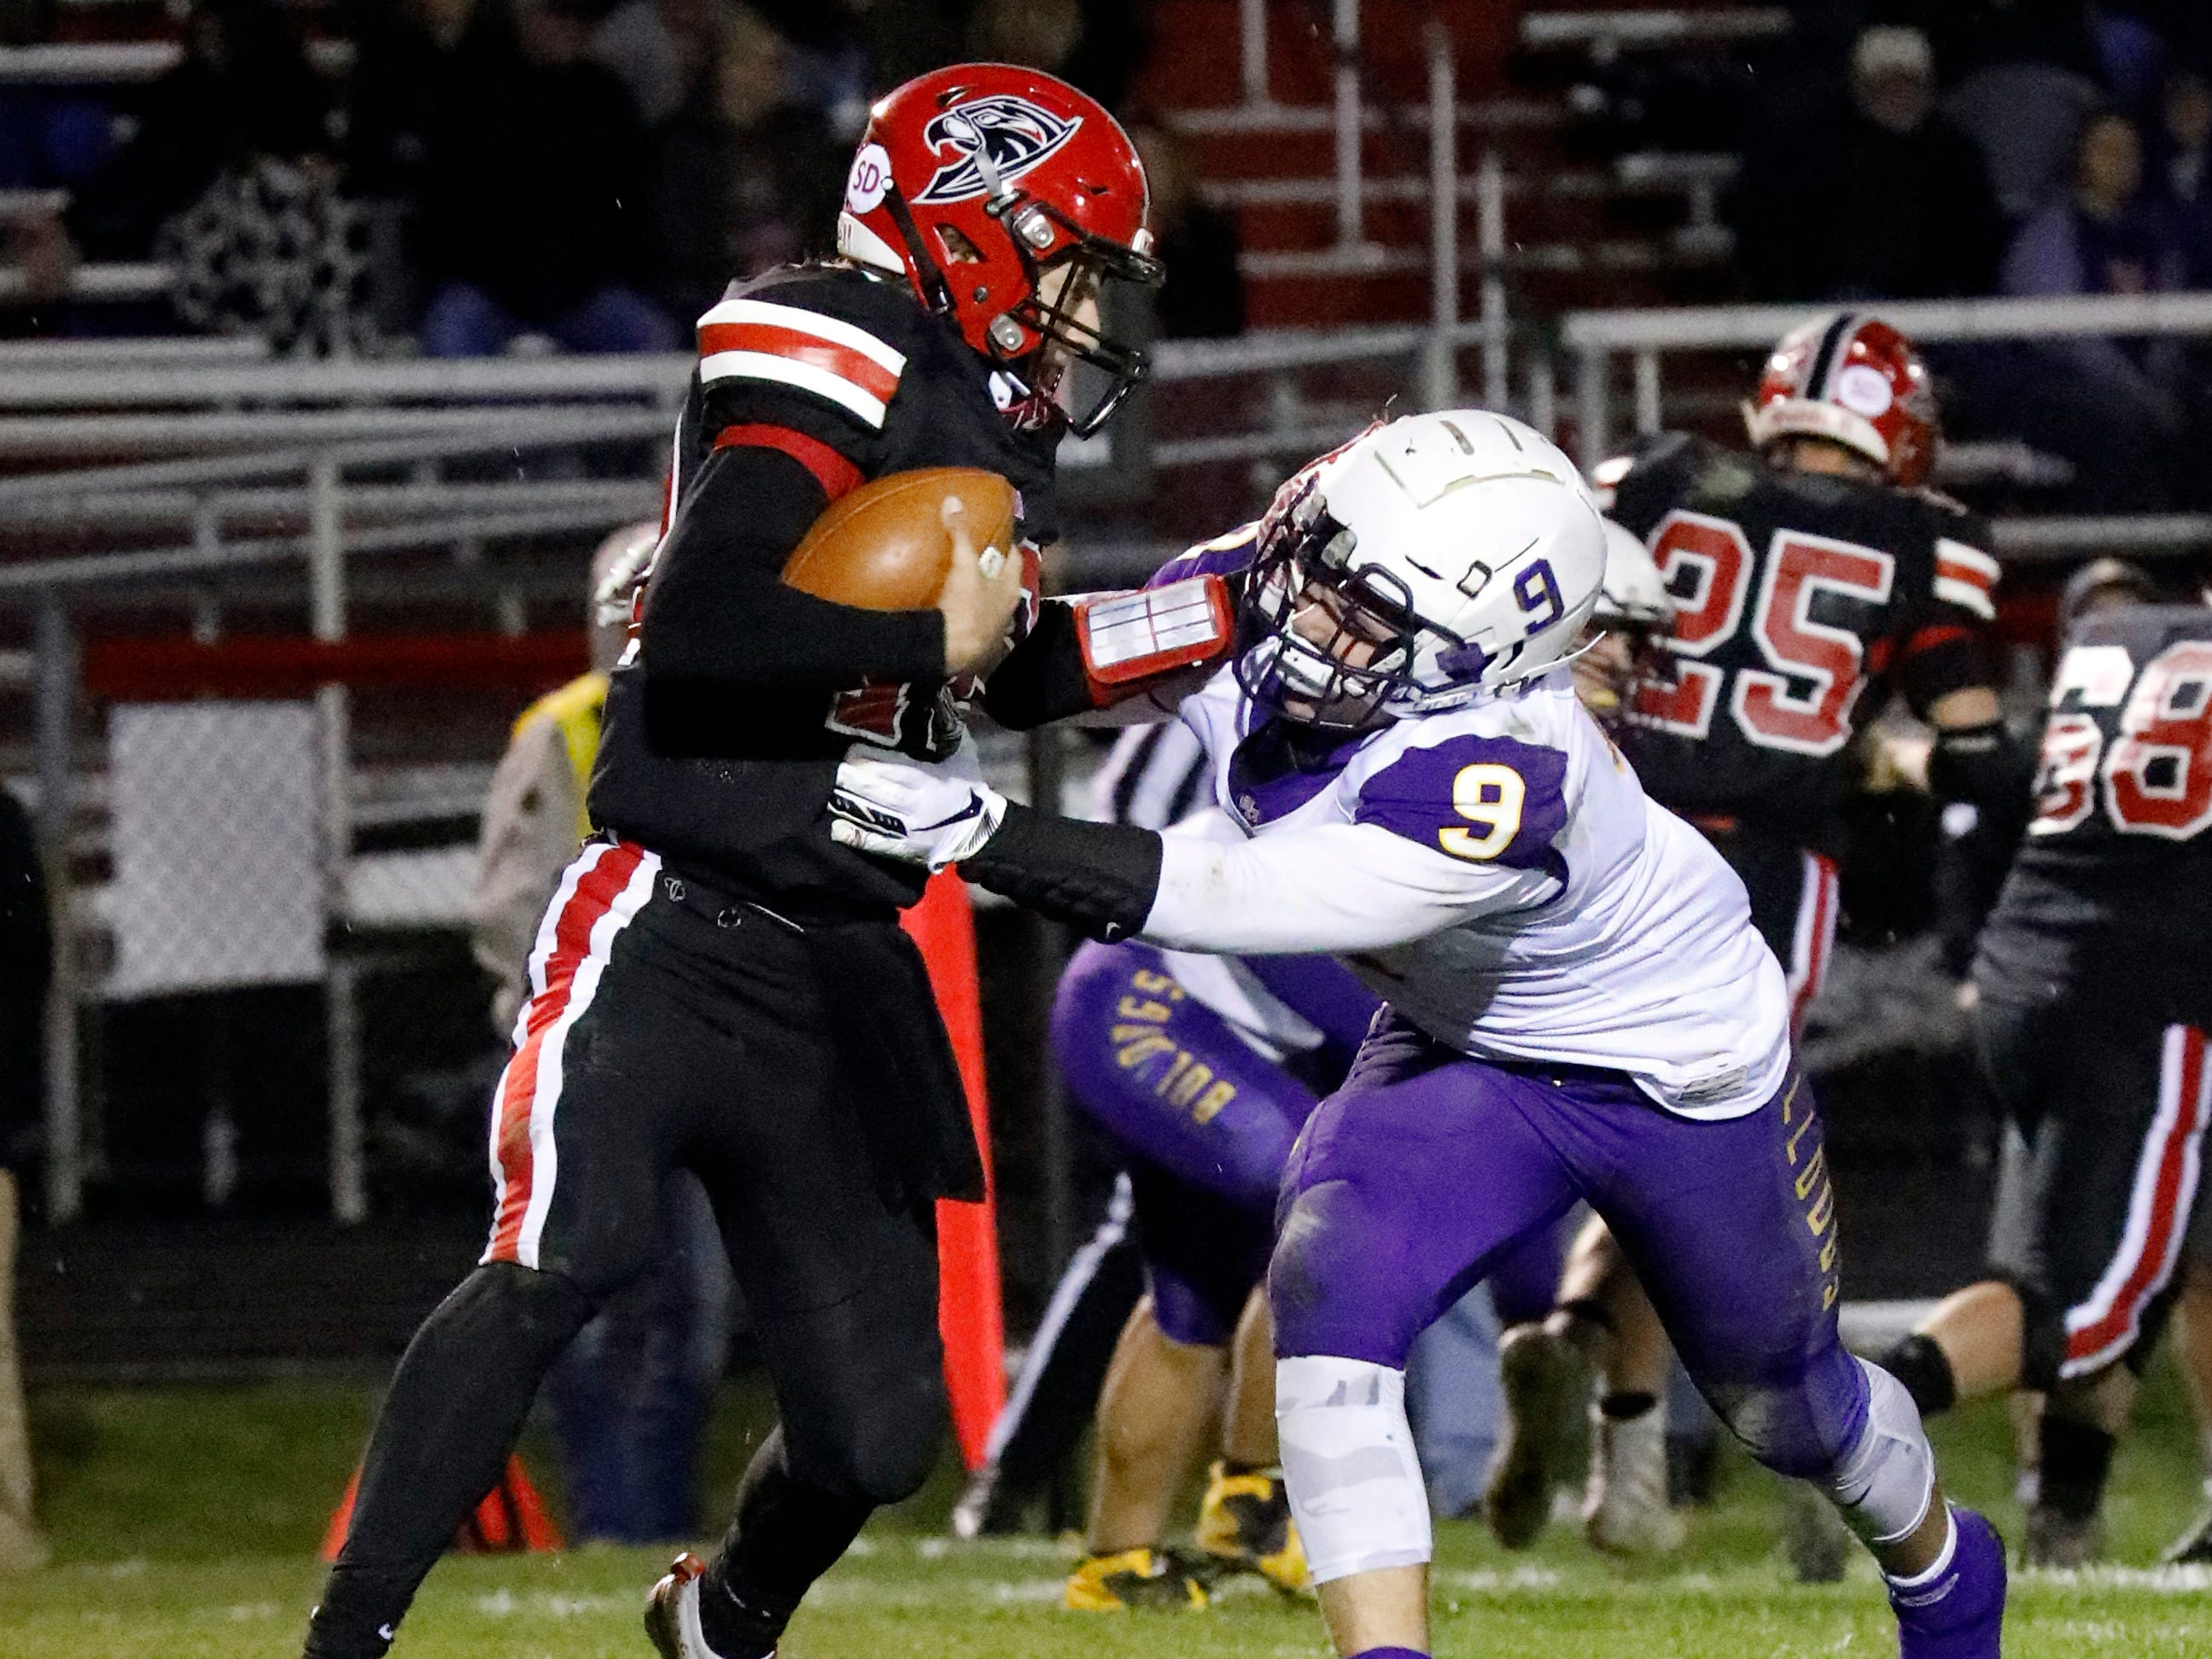 Fairfield Union quarterback Blayde Patton is sacked by Bloom-Carroll's Hobie Scarberry Friday night, Oct. 19, 2018, at Fairfield Union High School in Rushville. The Bulldogs defeated the Falcons 44-7.